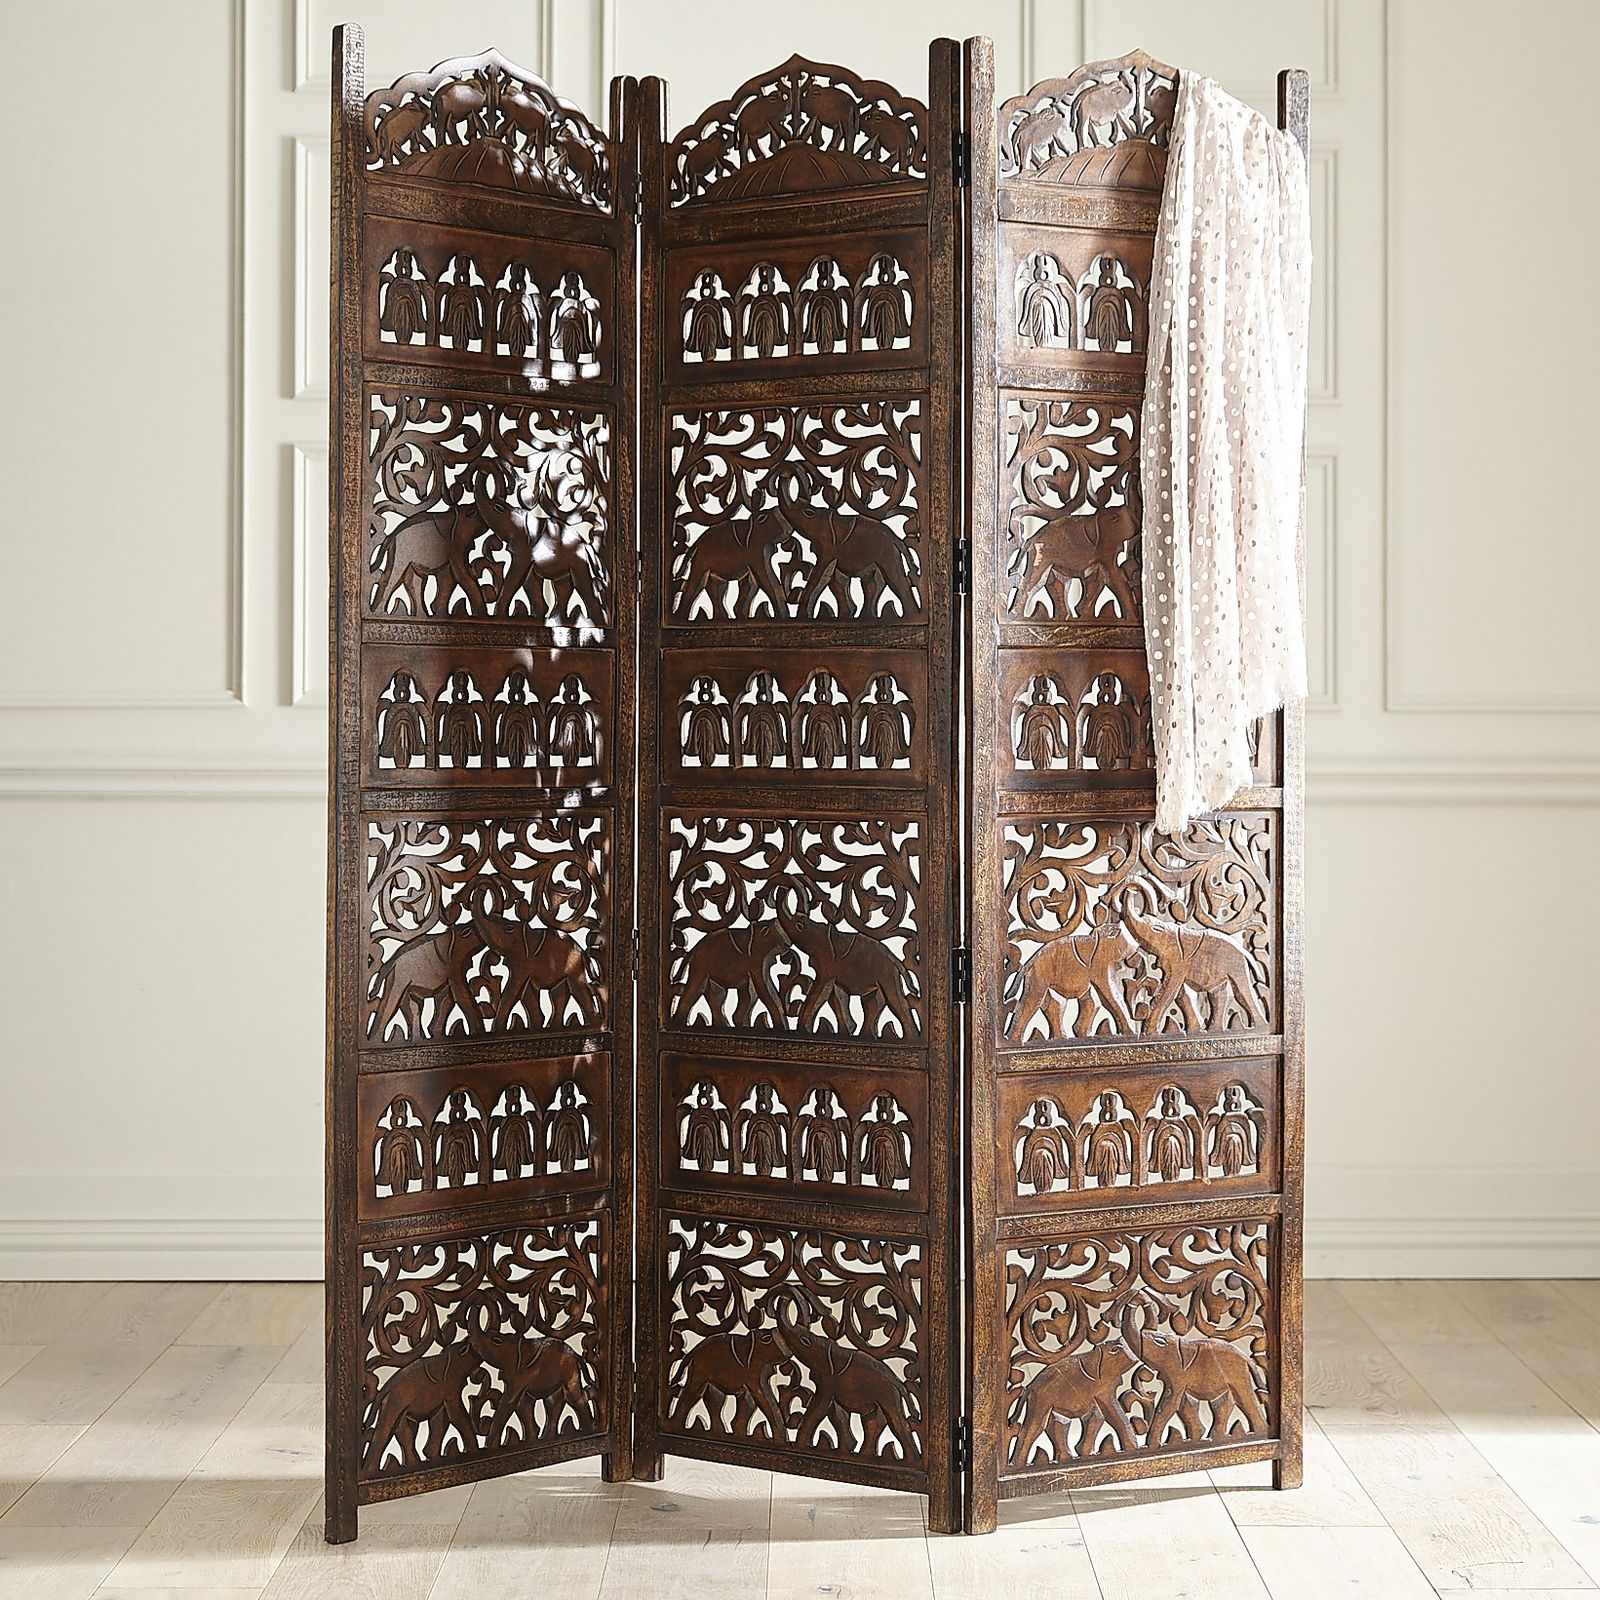 Images Of Room Dividers 7 Best Room Divider Images On Pinterest  Room Dividers Wall